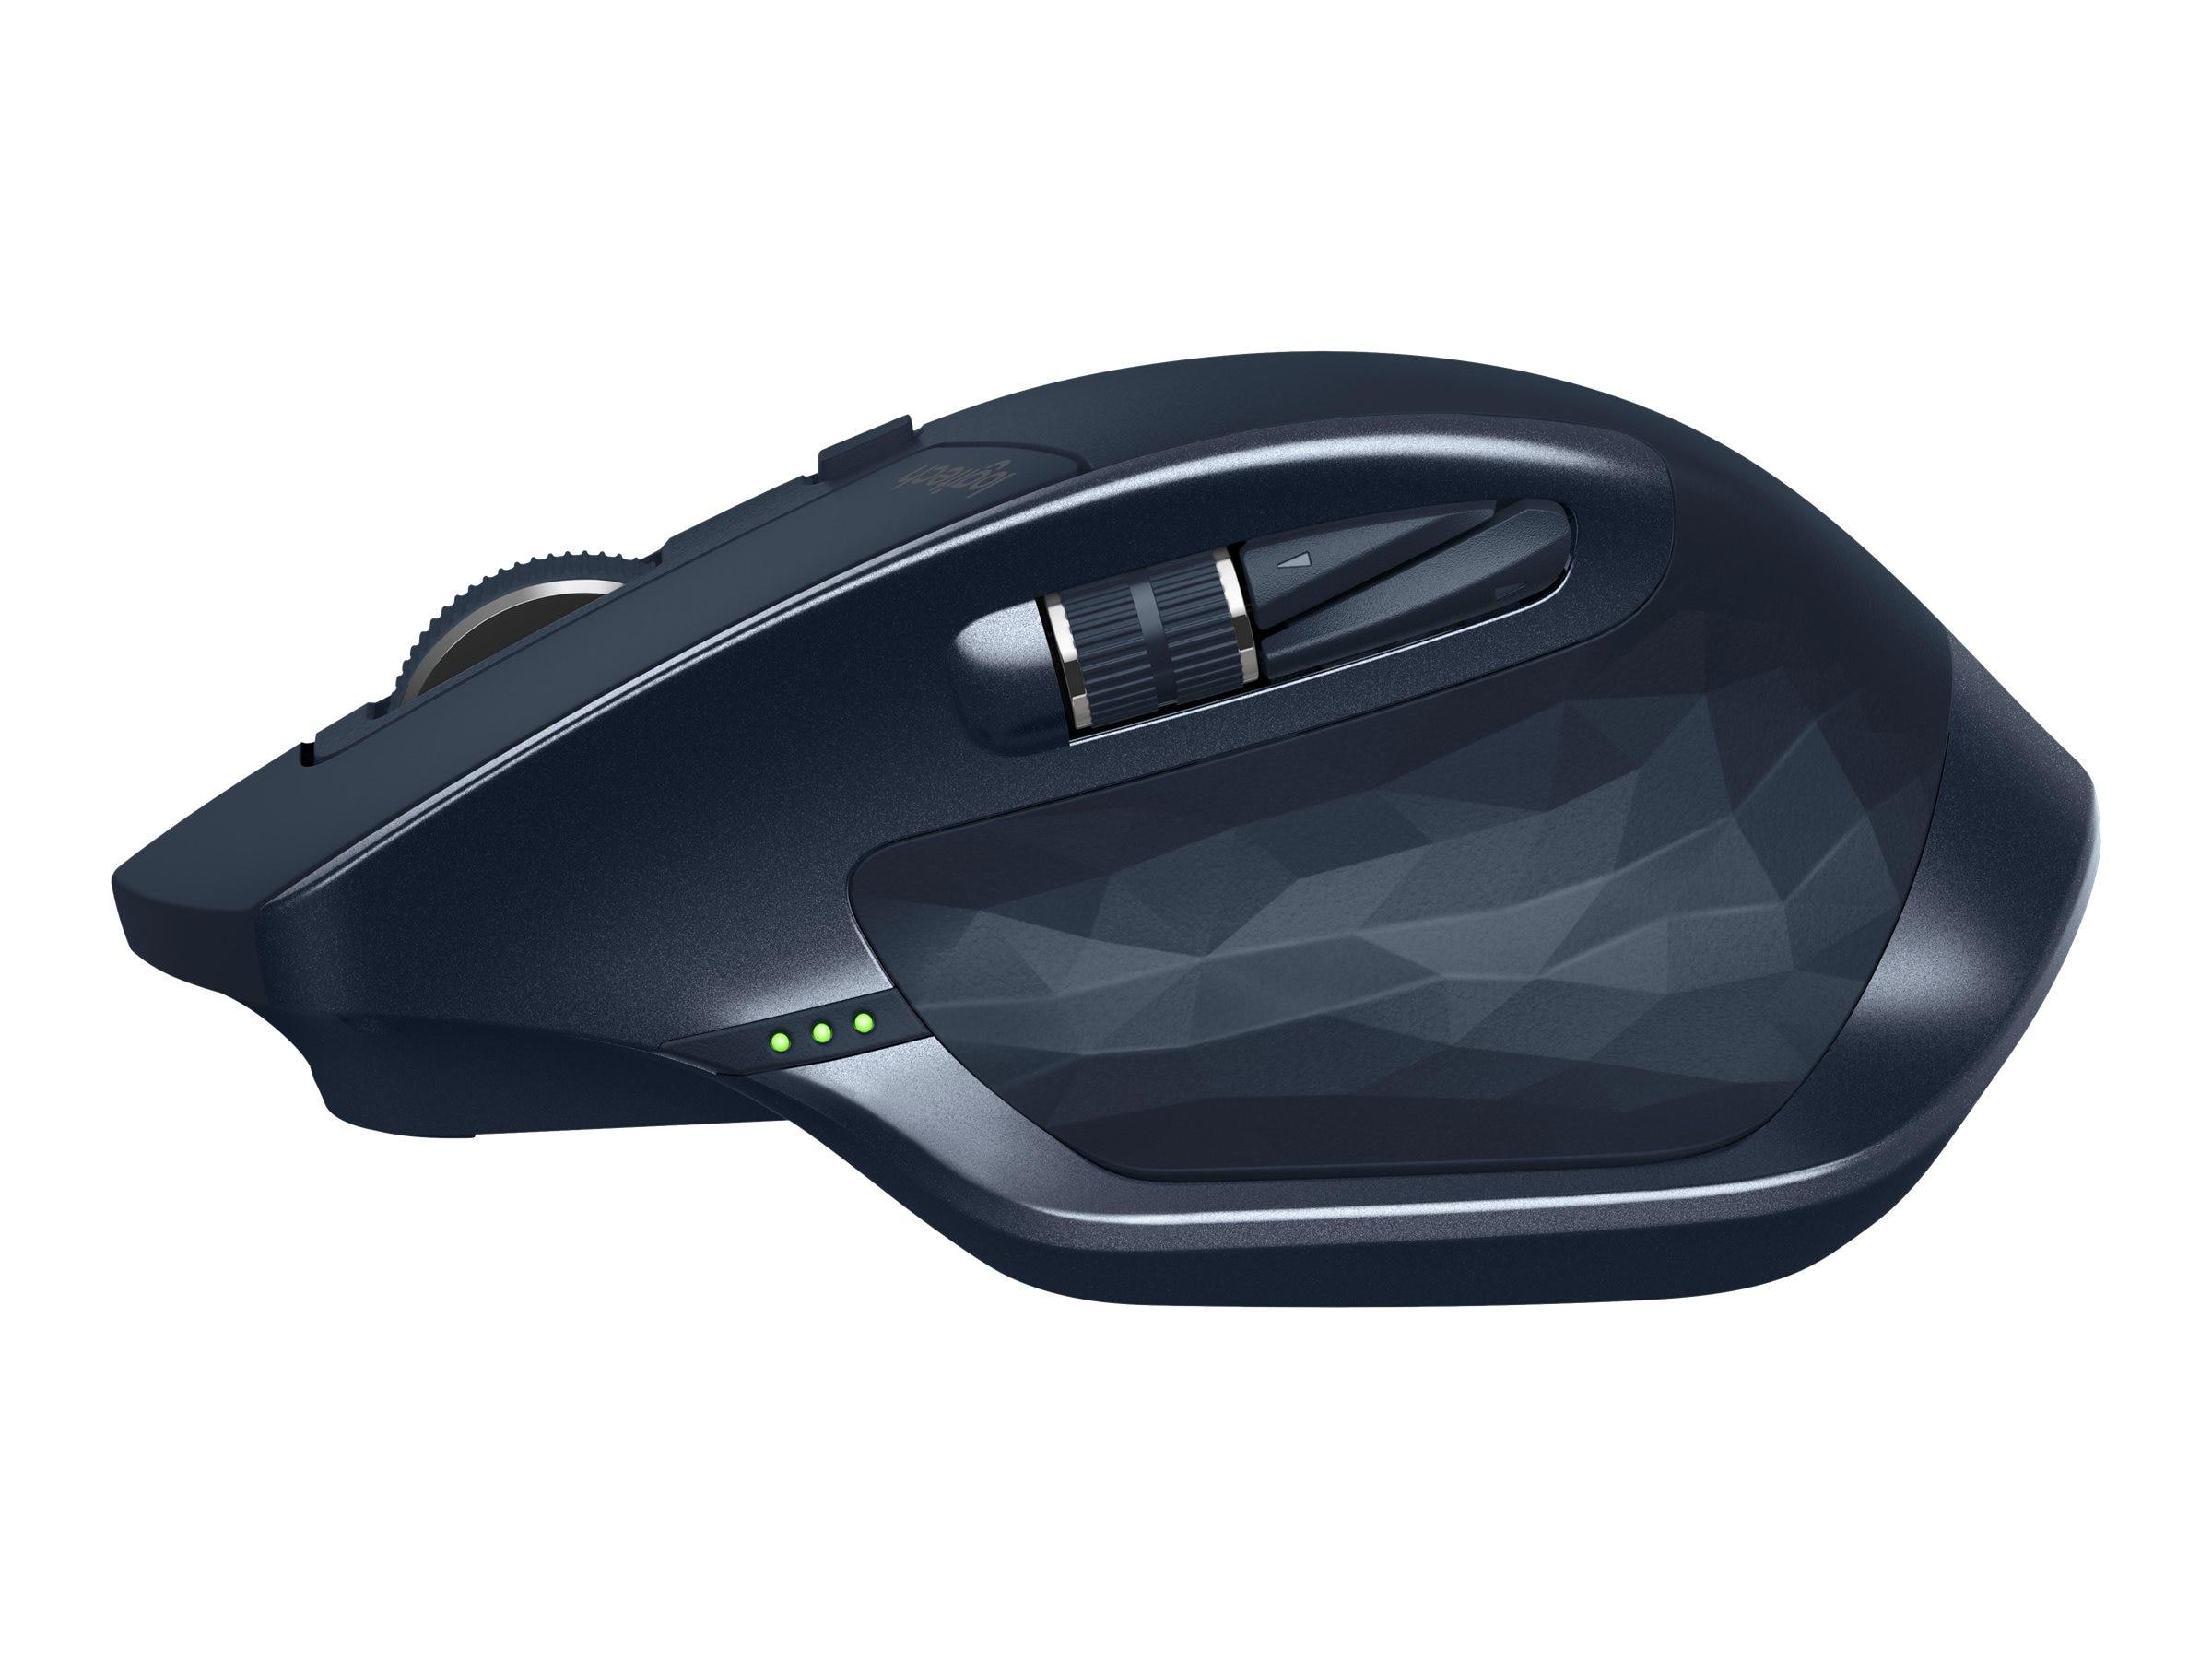 Logitech MX Master Wireless Mouse, Navy, 910-004955